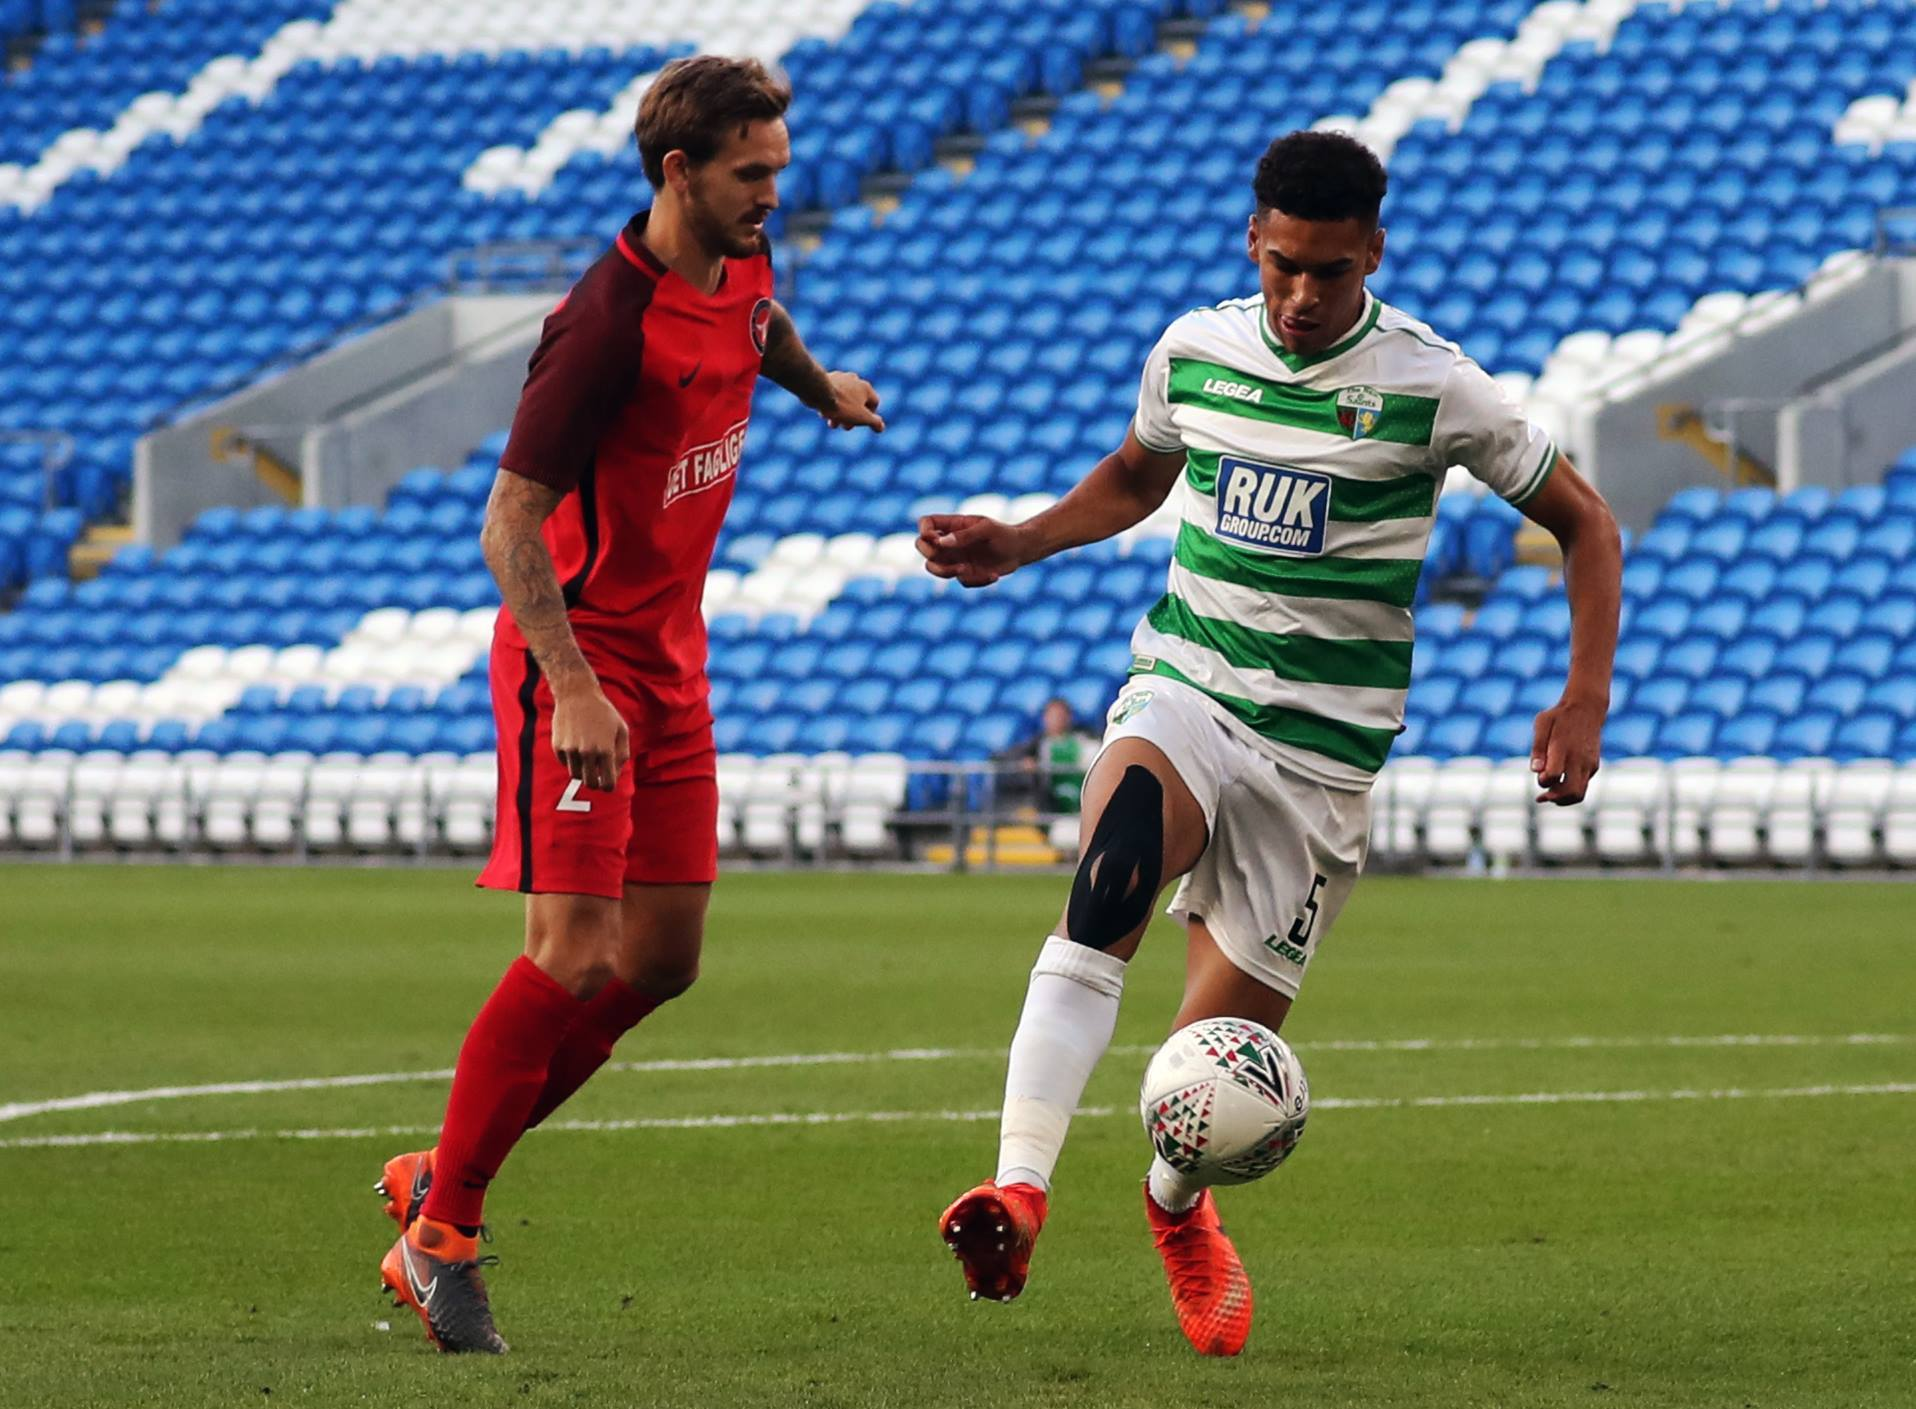 Action from TNS' first leg clash against Midtjylland.